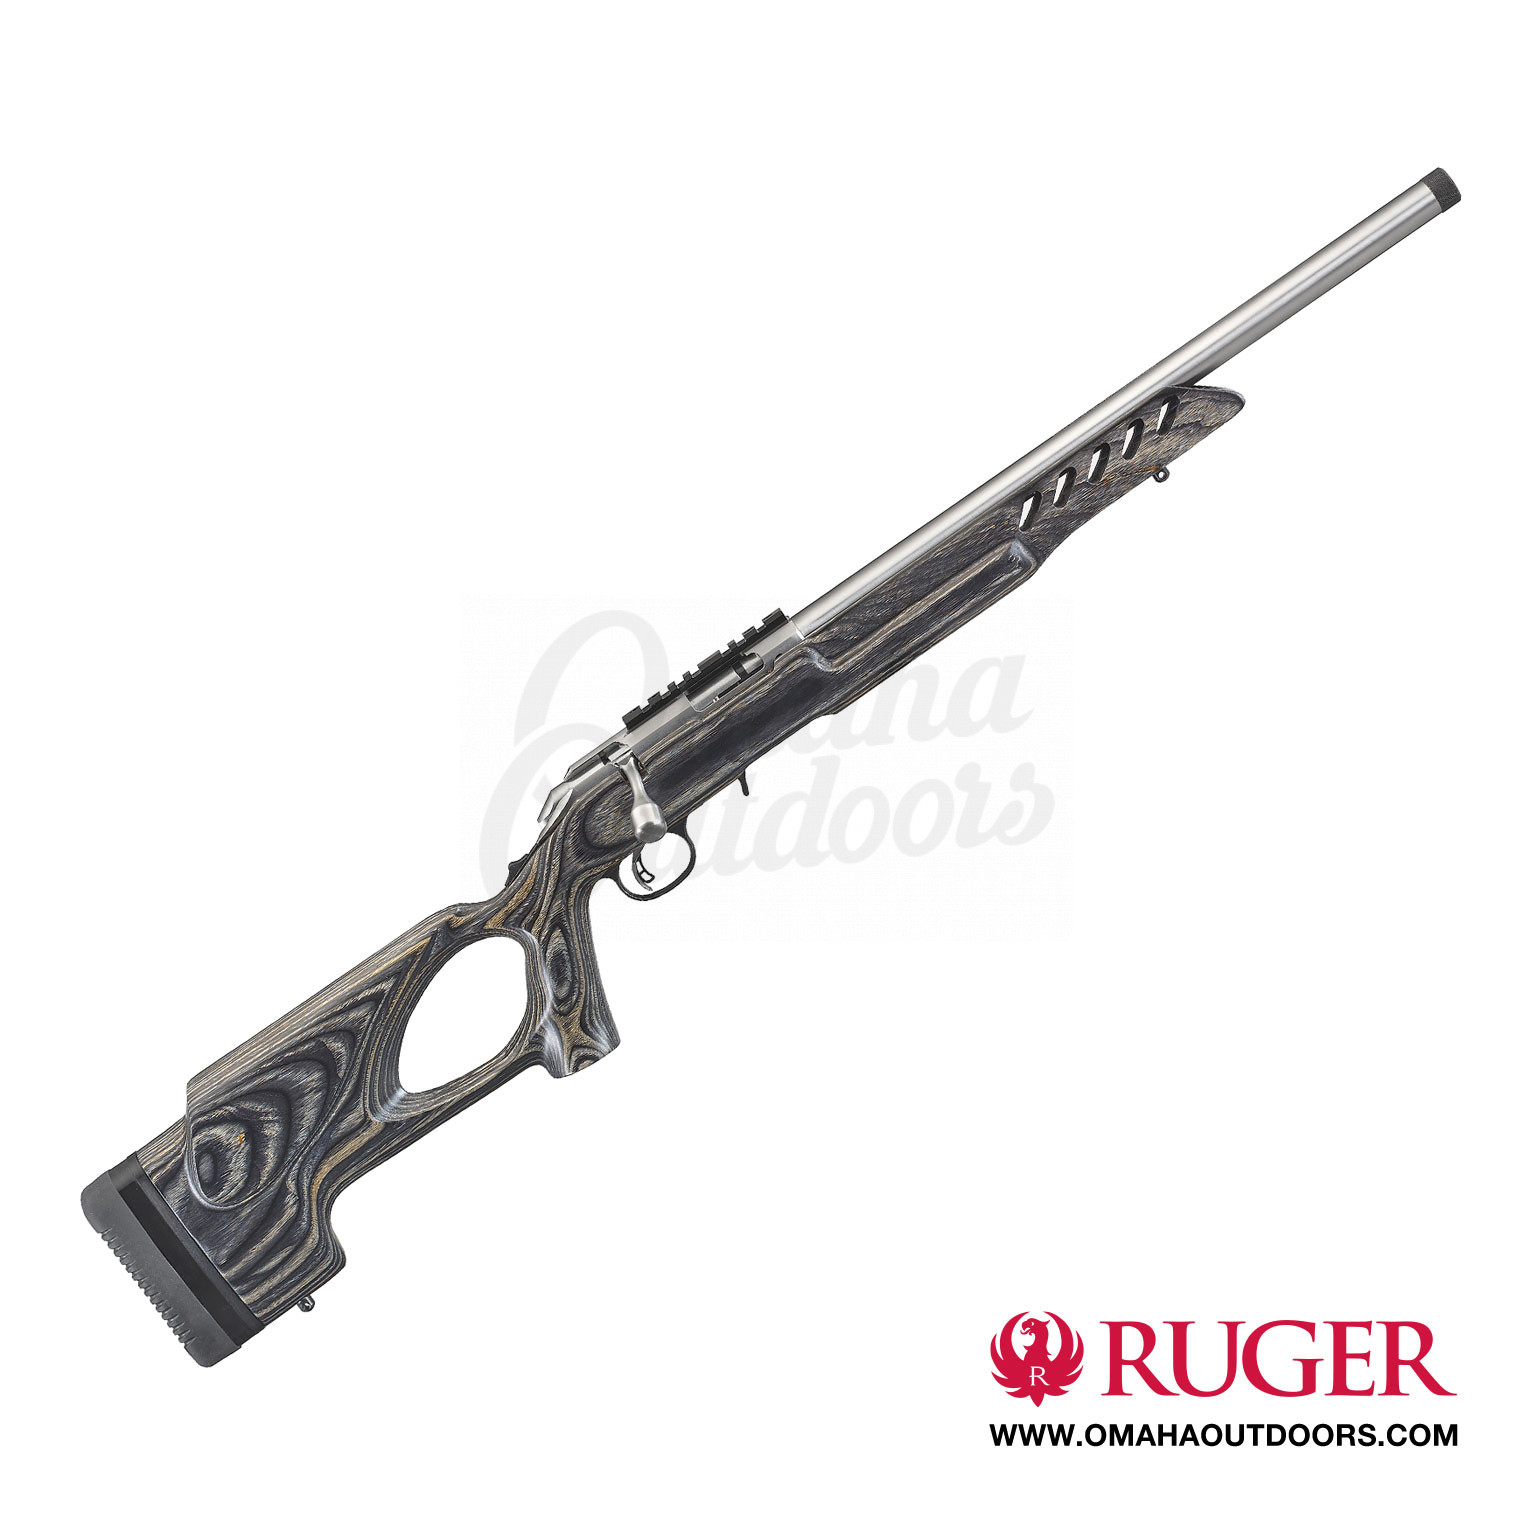 Ruger American Rimfire Target Stainless Bolt Rifle 22lr 10